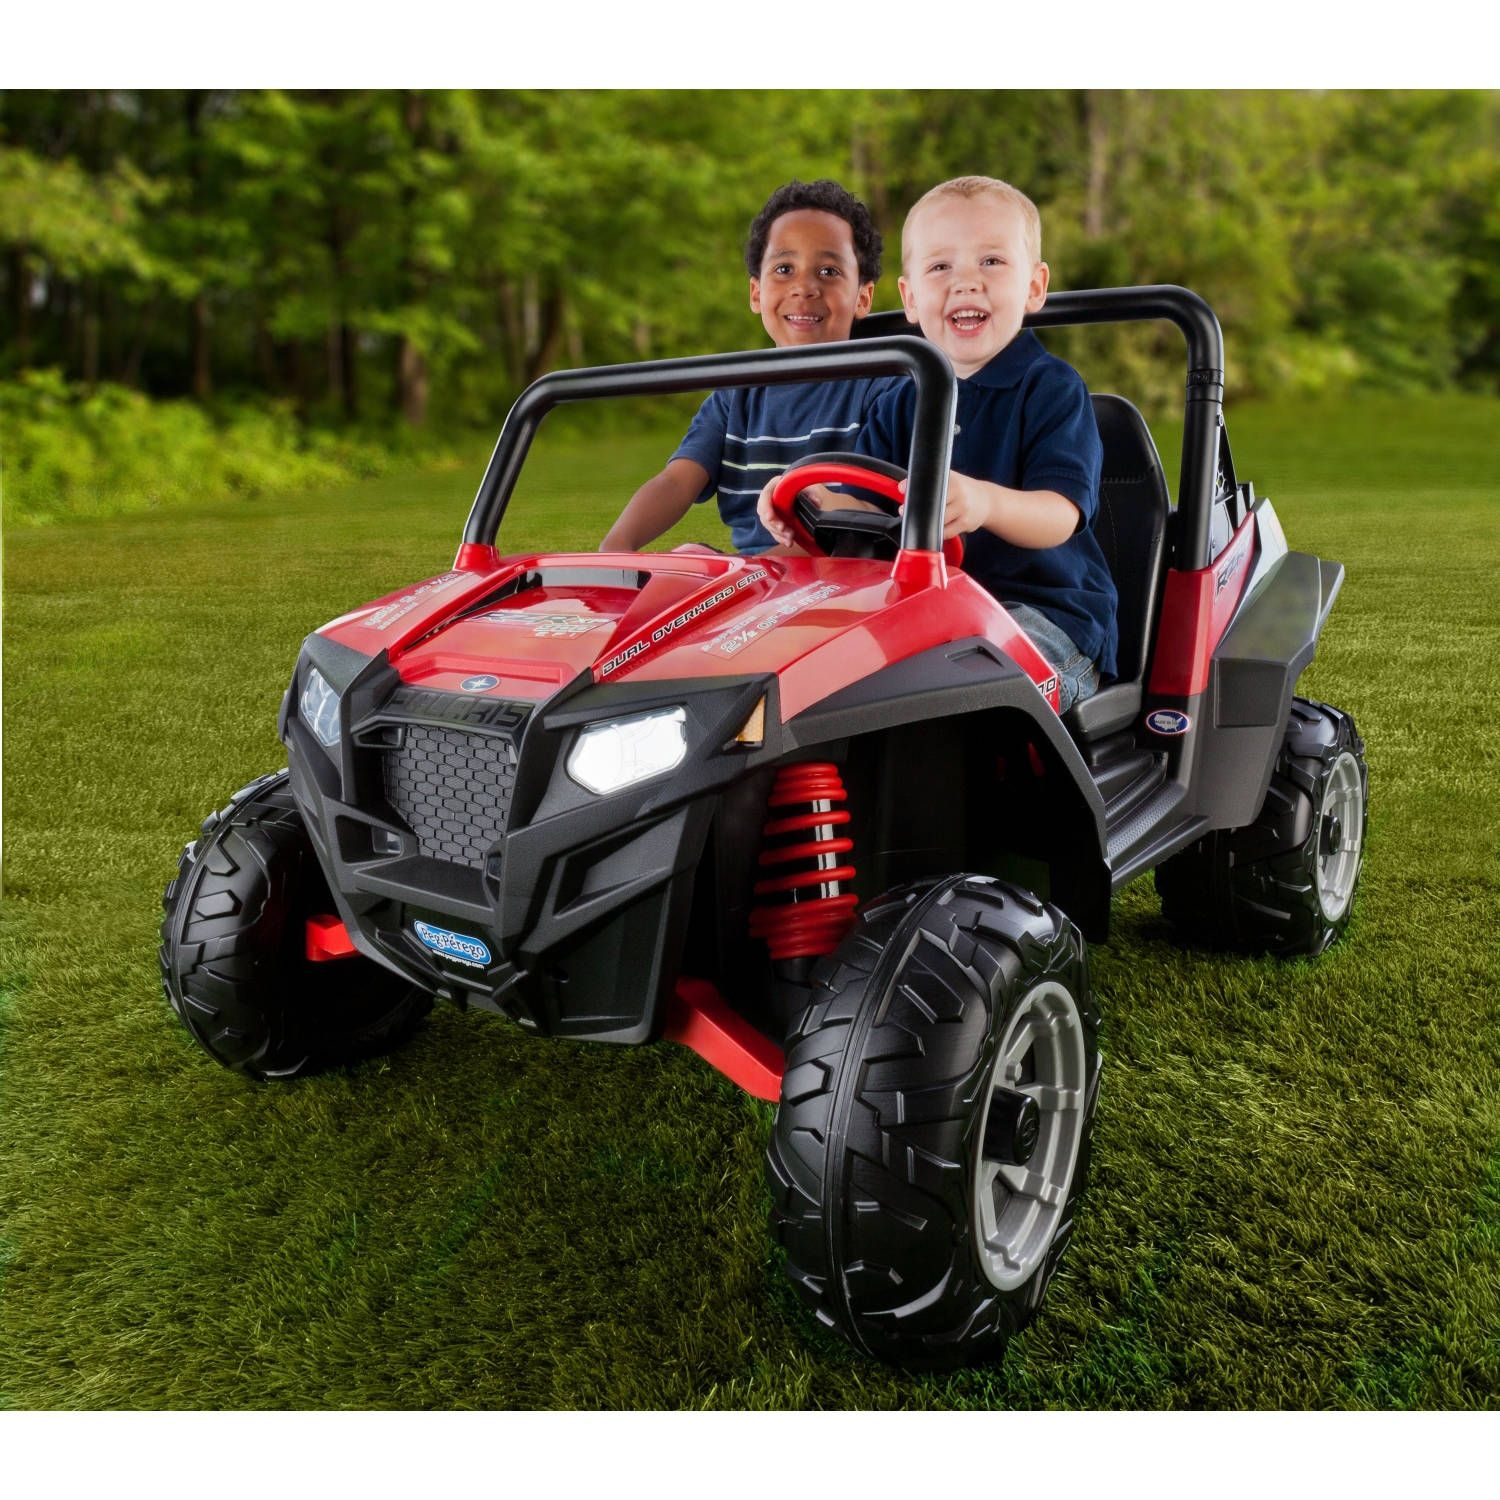 Peg perego polaris ranger rzr 900 12 volt battery powered ride on peg perego polaris ranger rzr 900 12 volt battery powered ride on publicscrutiny Images